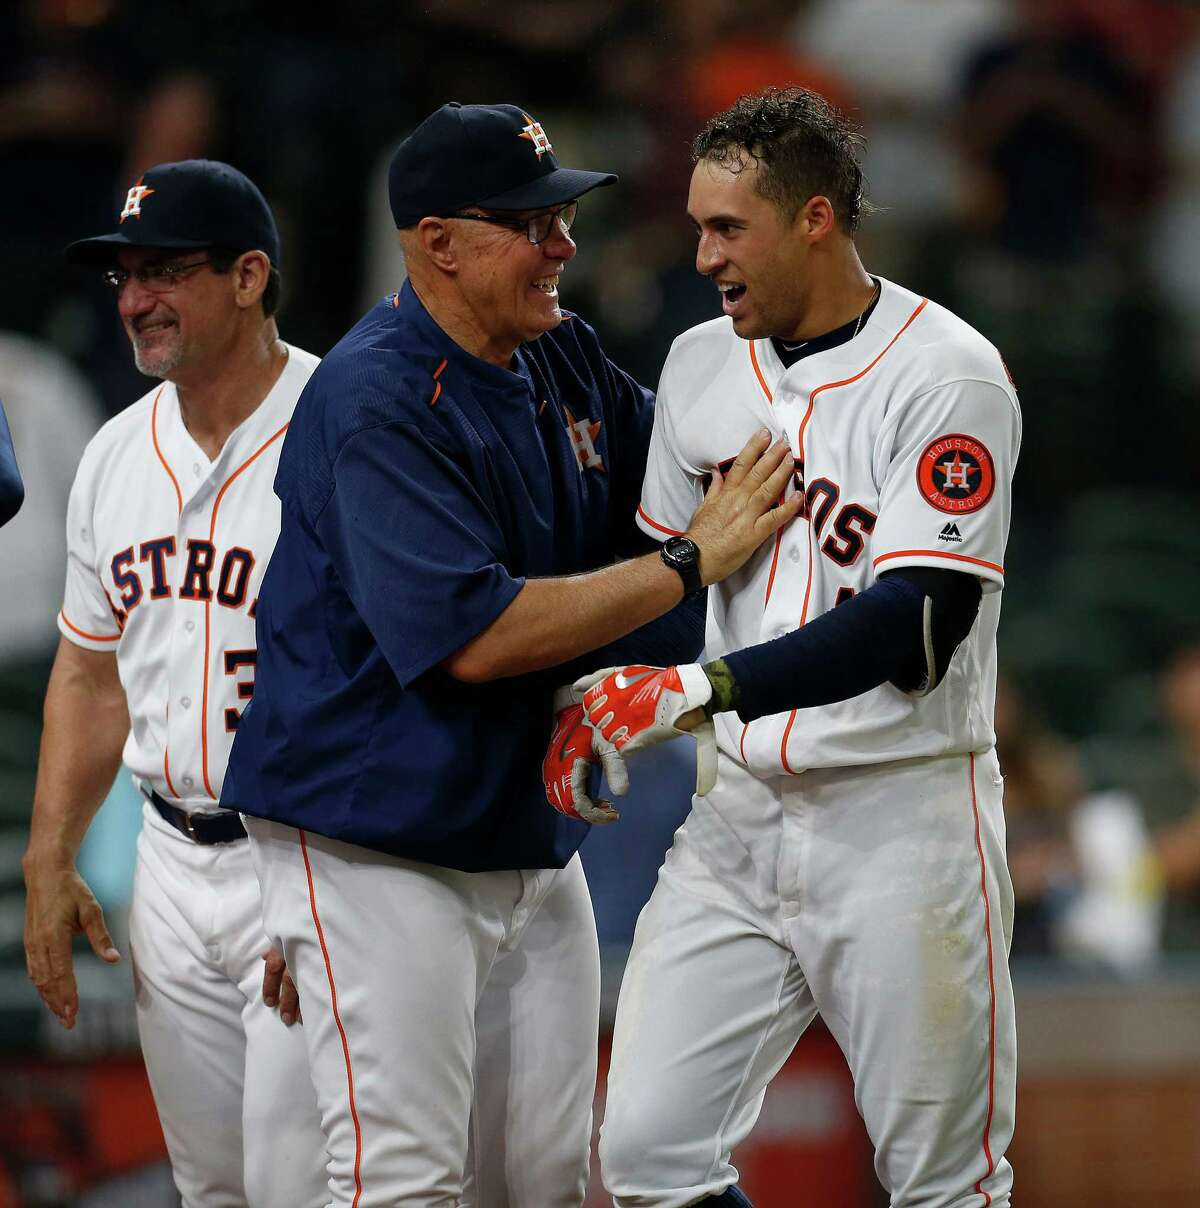 June 1: Astros 5, Diamondbacks 4 (11) Houston Astros George Springer celebrates with pitching coach Brent Strom after he hit game winning walk off home run in the eleventh inning of an MLB baseball game at Minute Maid Park, Wednesday, June 1, 2016, in Houston.